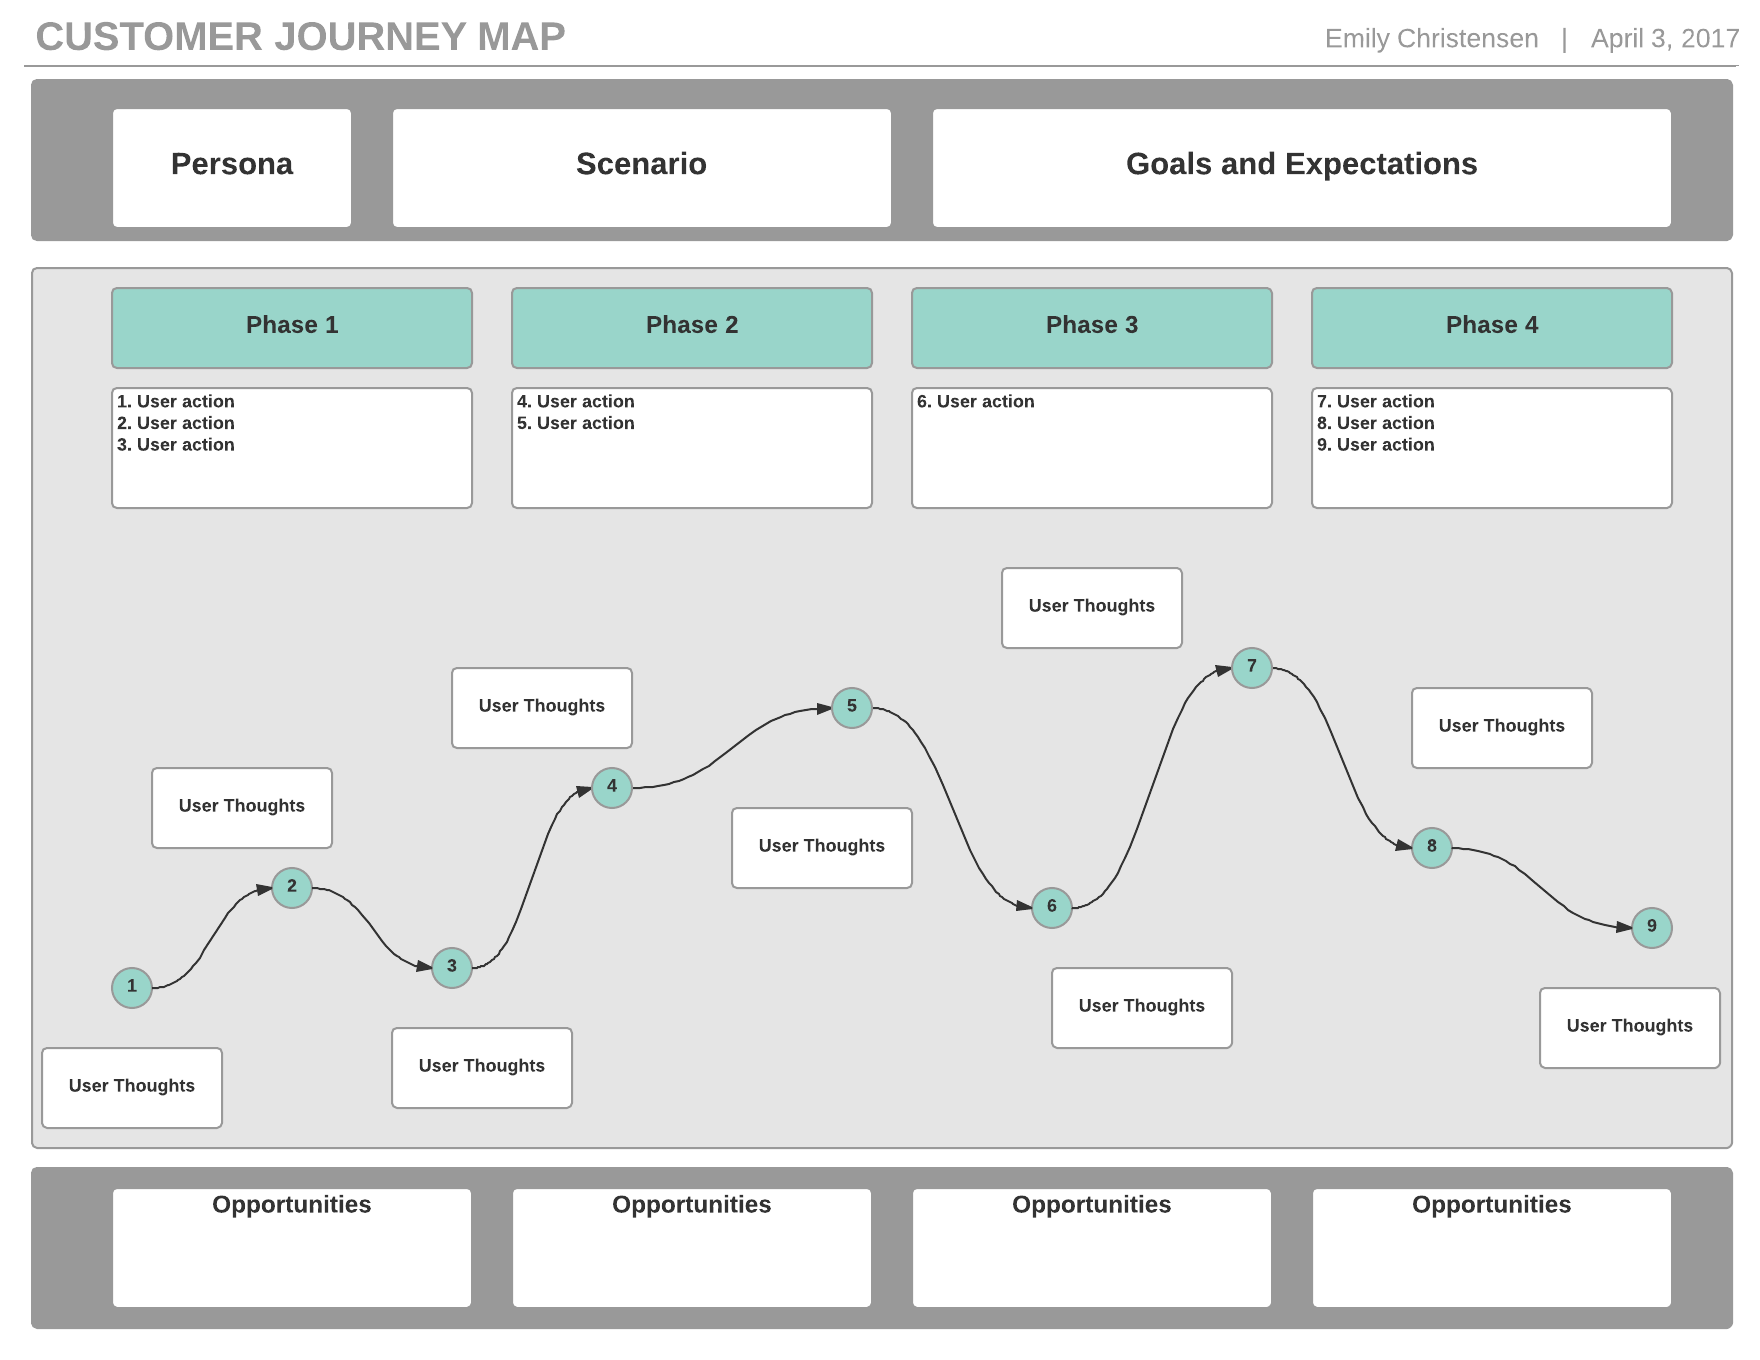 How to Create a Customer Journey Map | Lucidchart Customer Journey Map Template on customer journey mapping, insurance customer experience mapping template, customer journey responses, customer service process map, service blueprint template, process improvement template, blank sign up sheet template, customer contact template, customer equipment list template, service mapping template, customer receiving car keys, customer journey canvas, service design template,